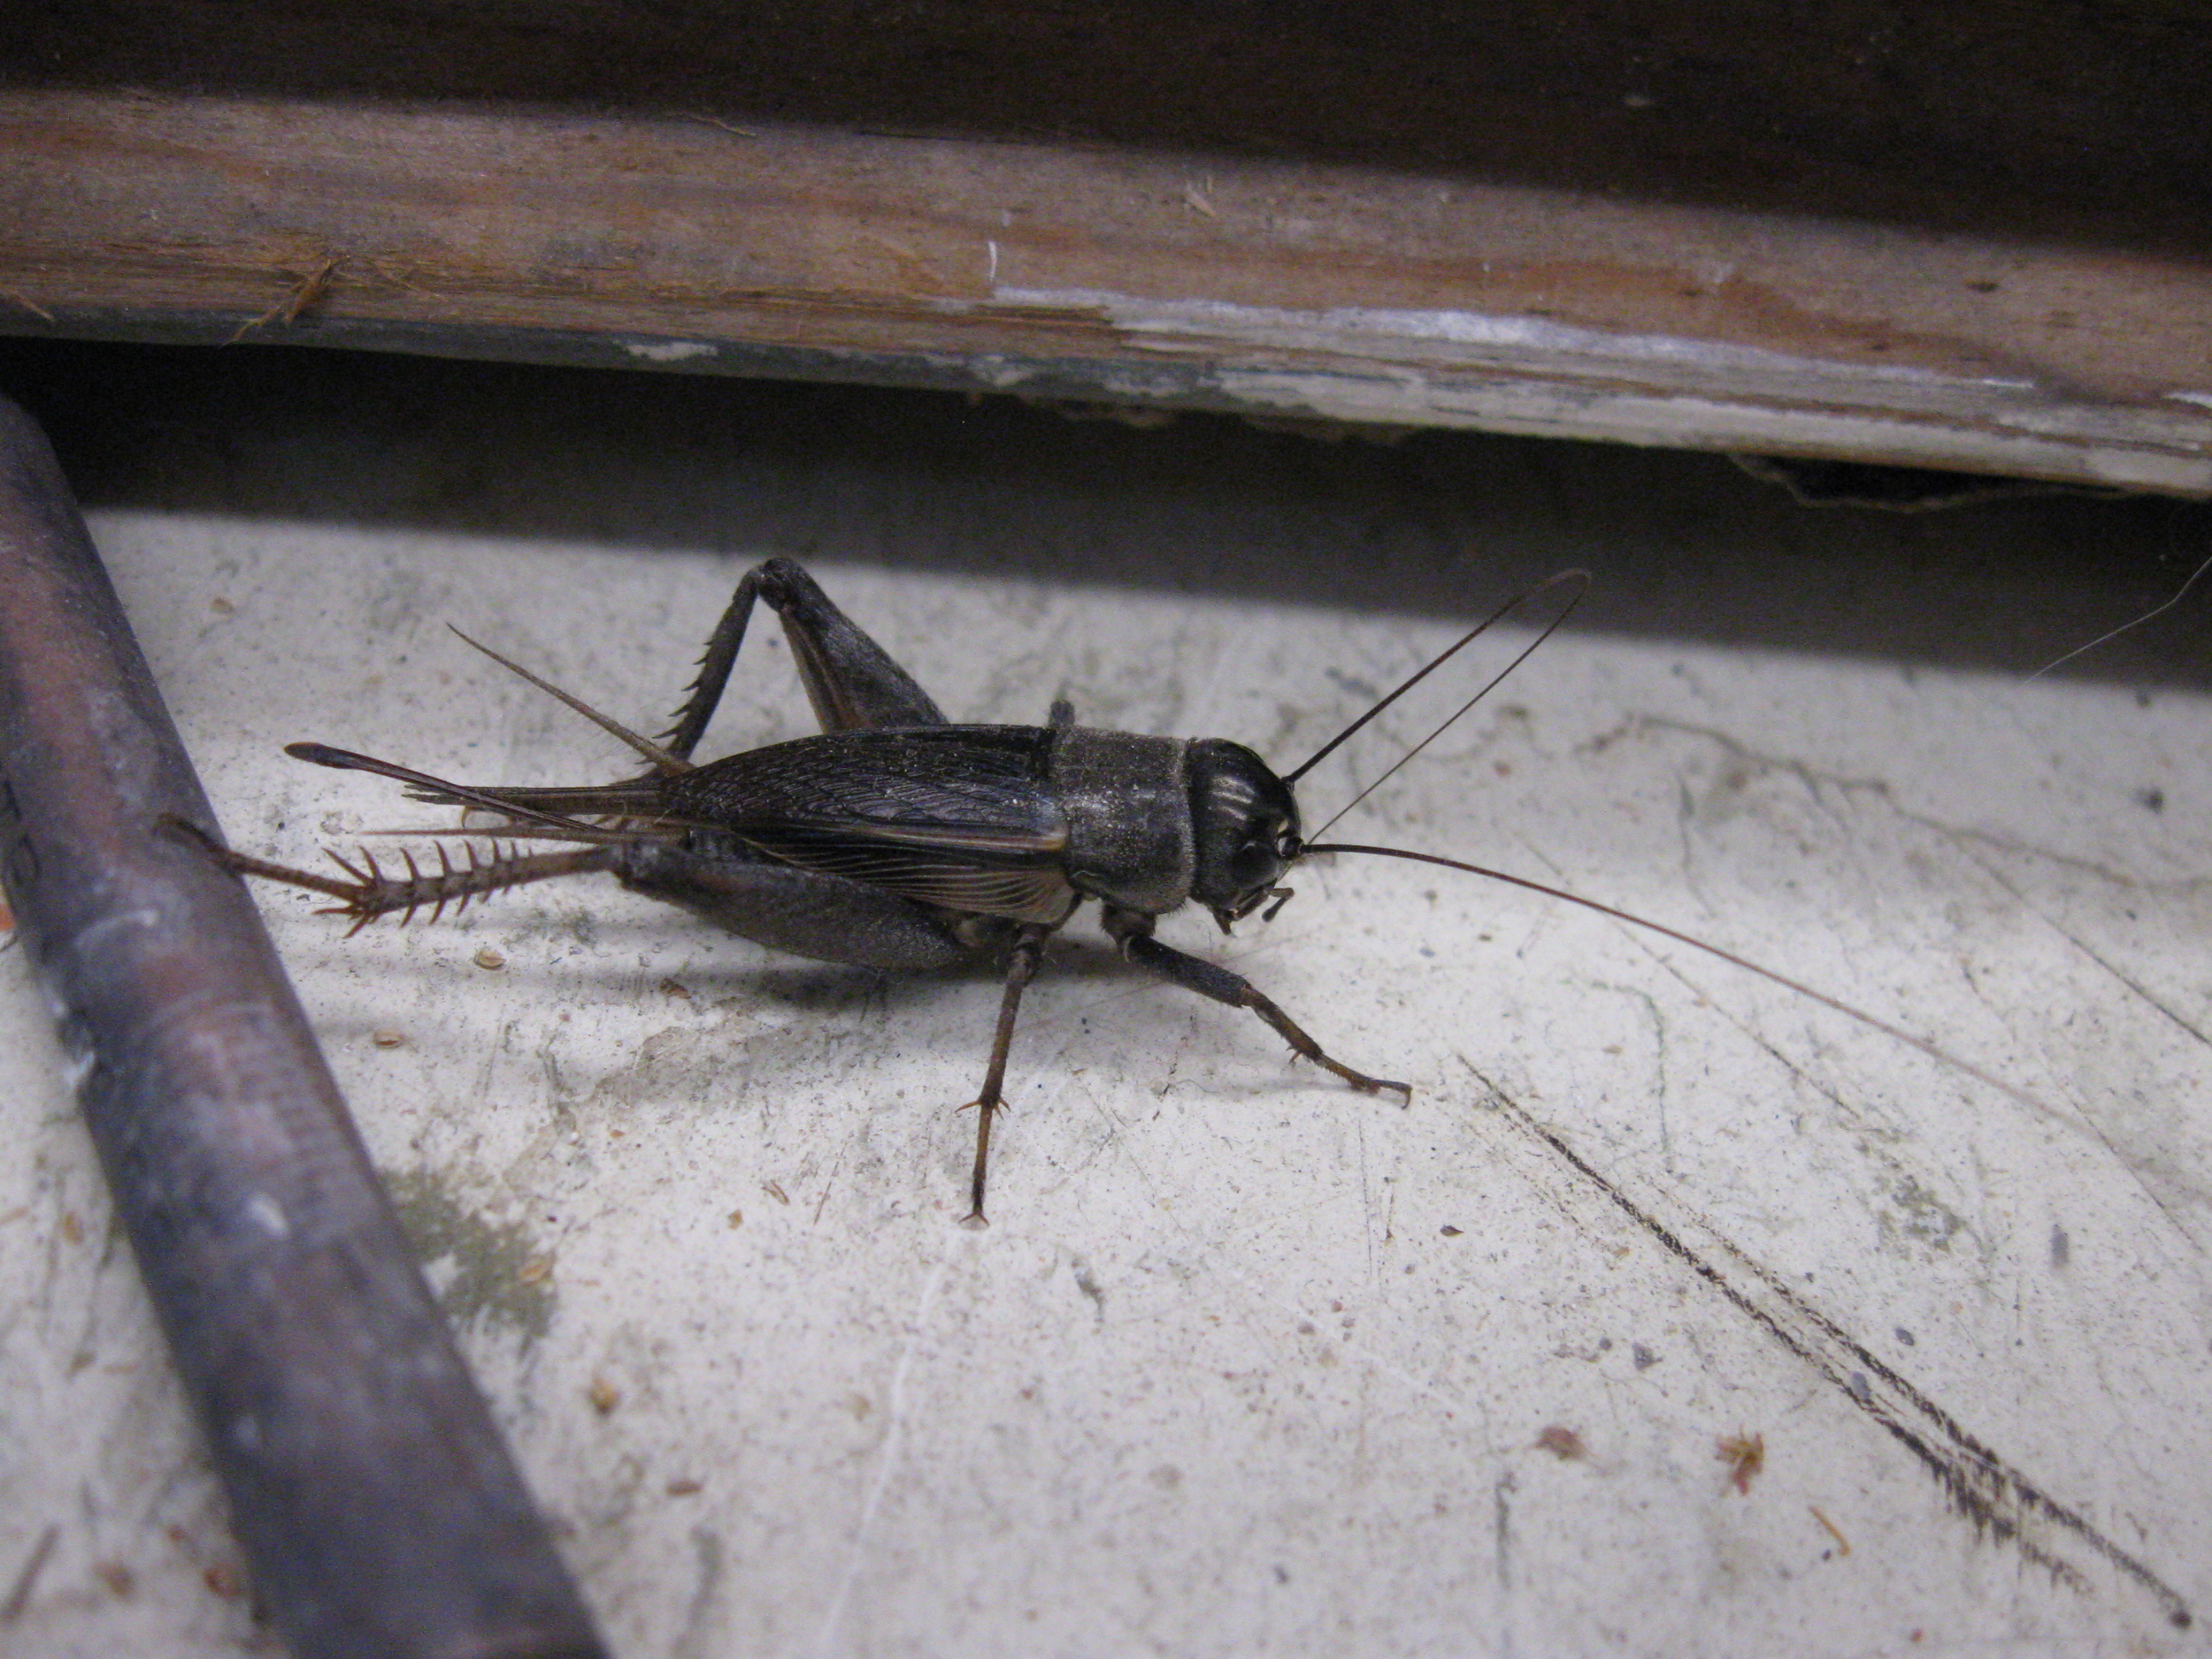 Image of Texas Field Cricket